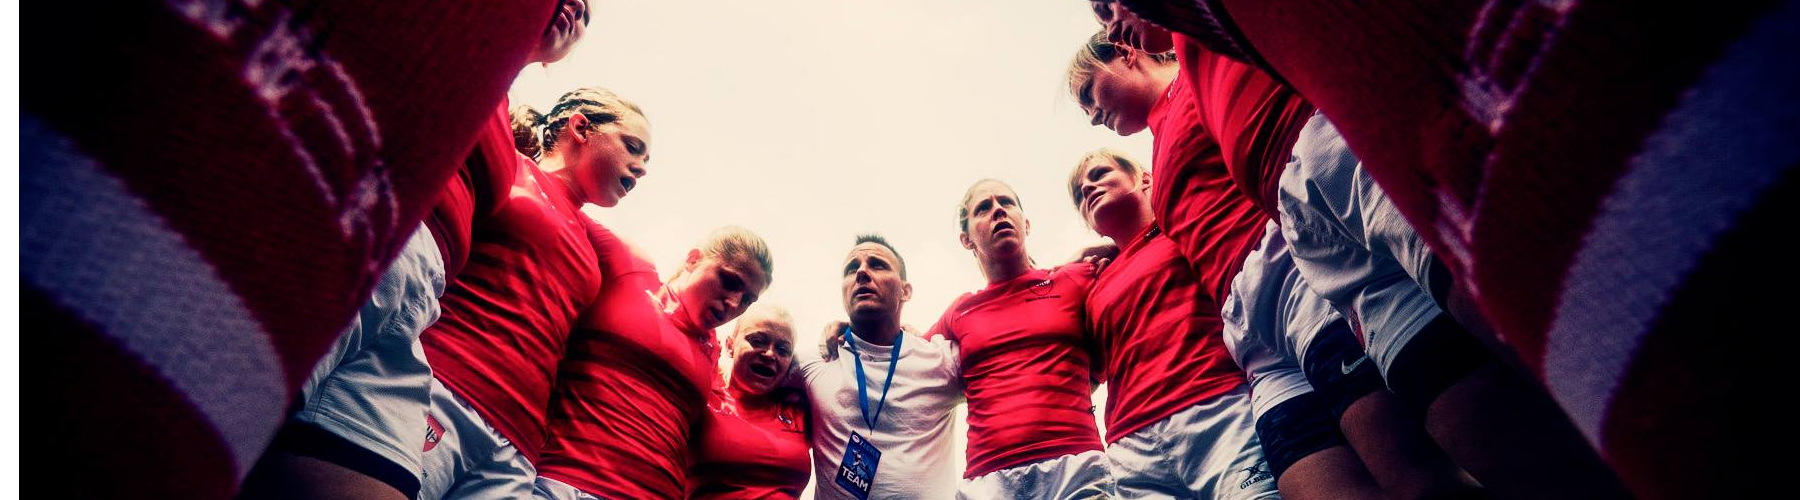 Dansk Rugby Union cover image